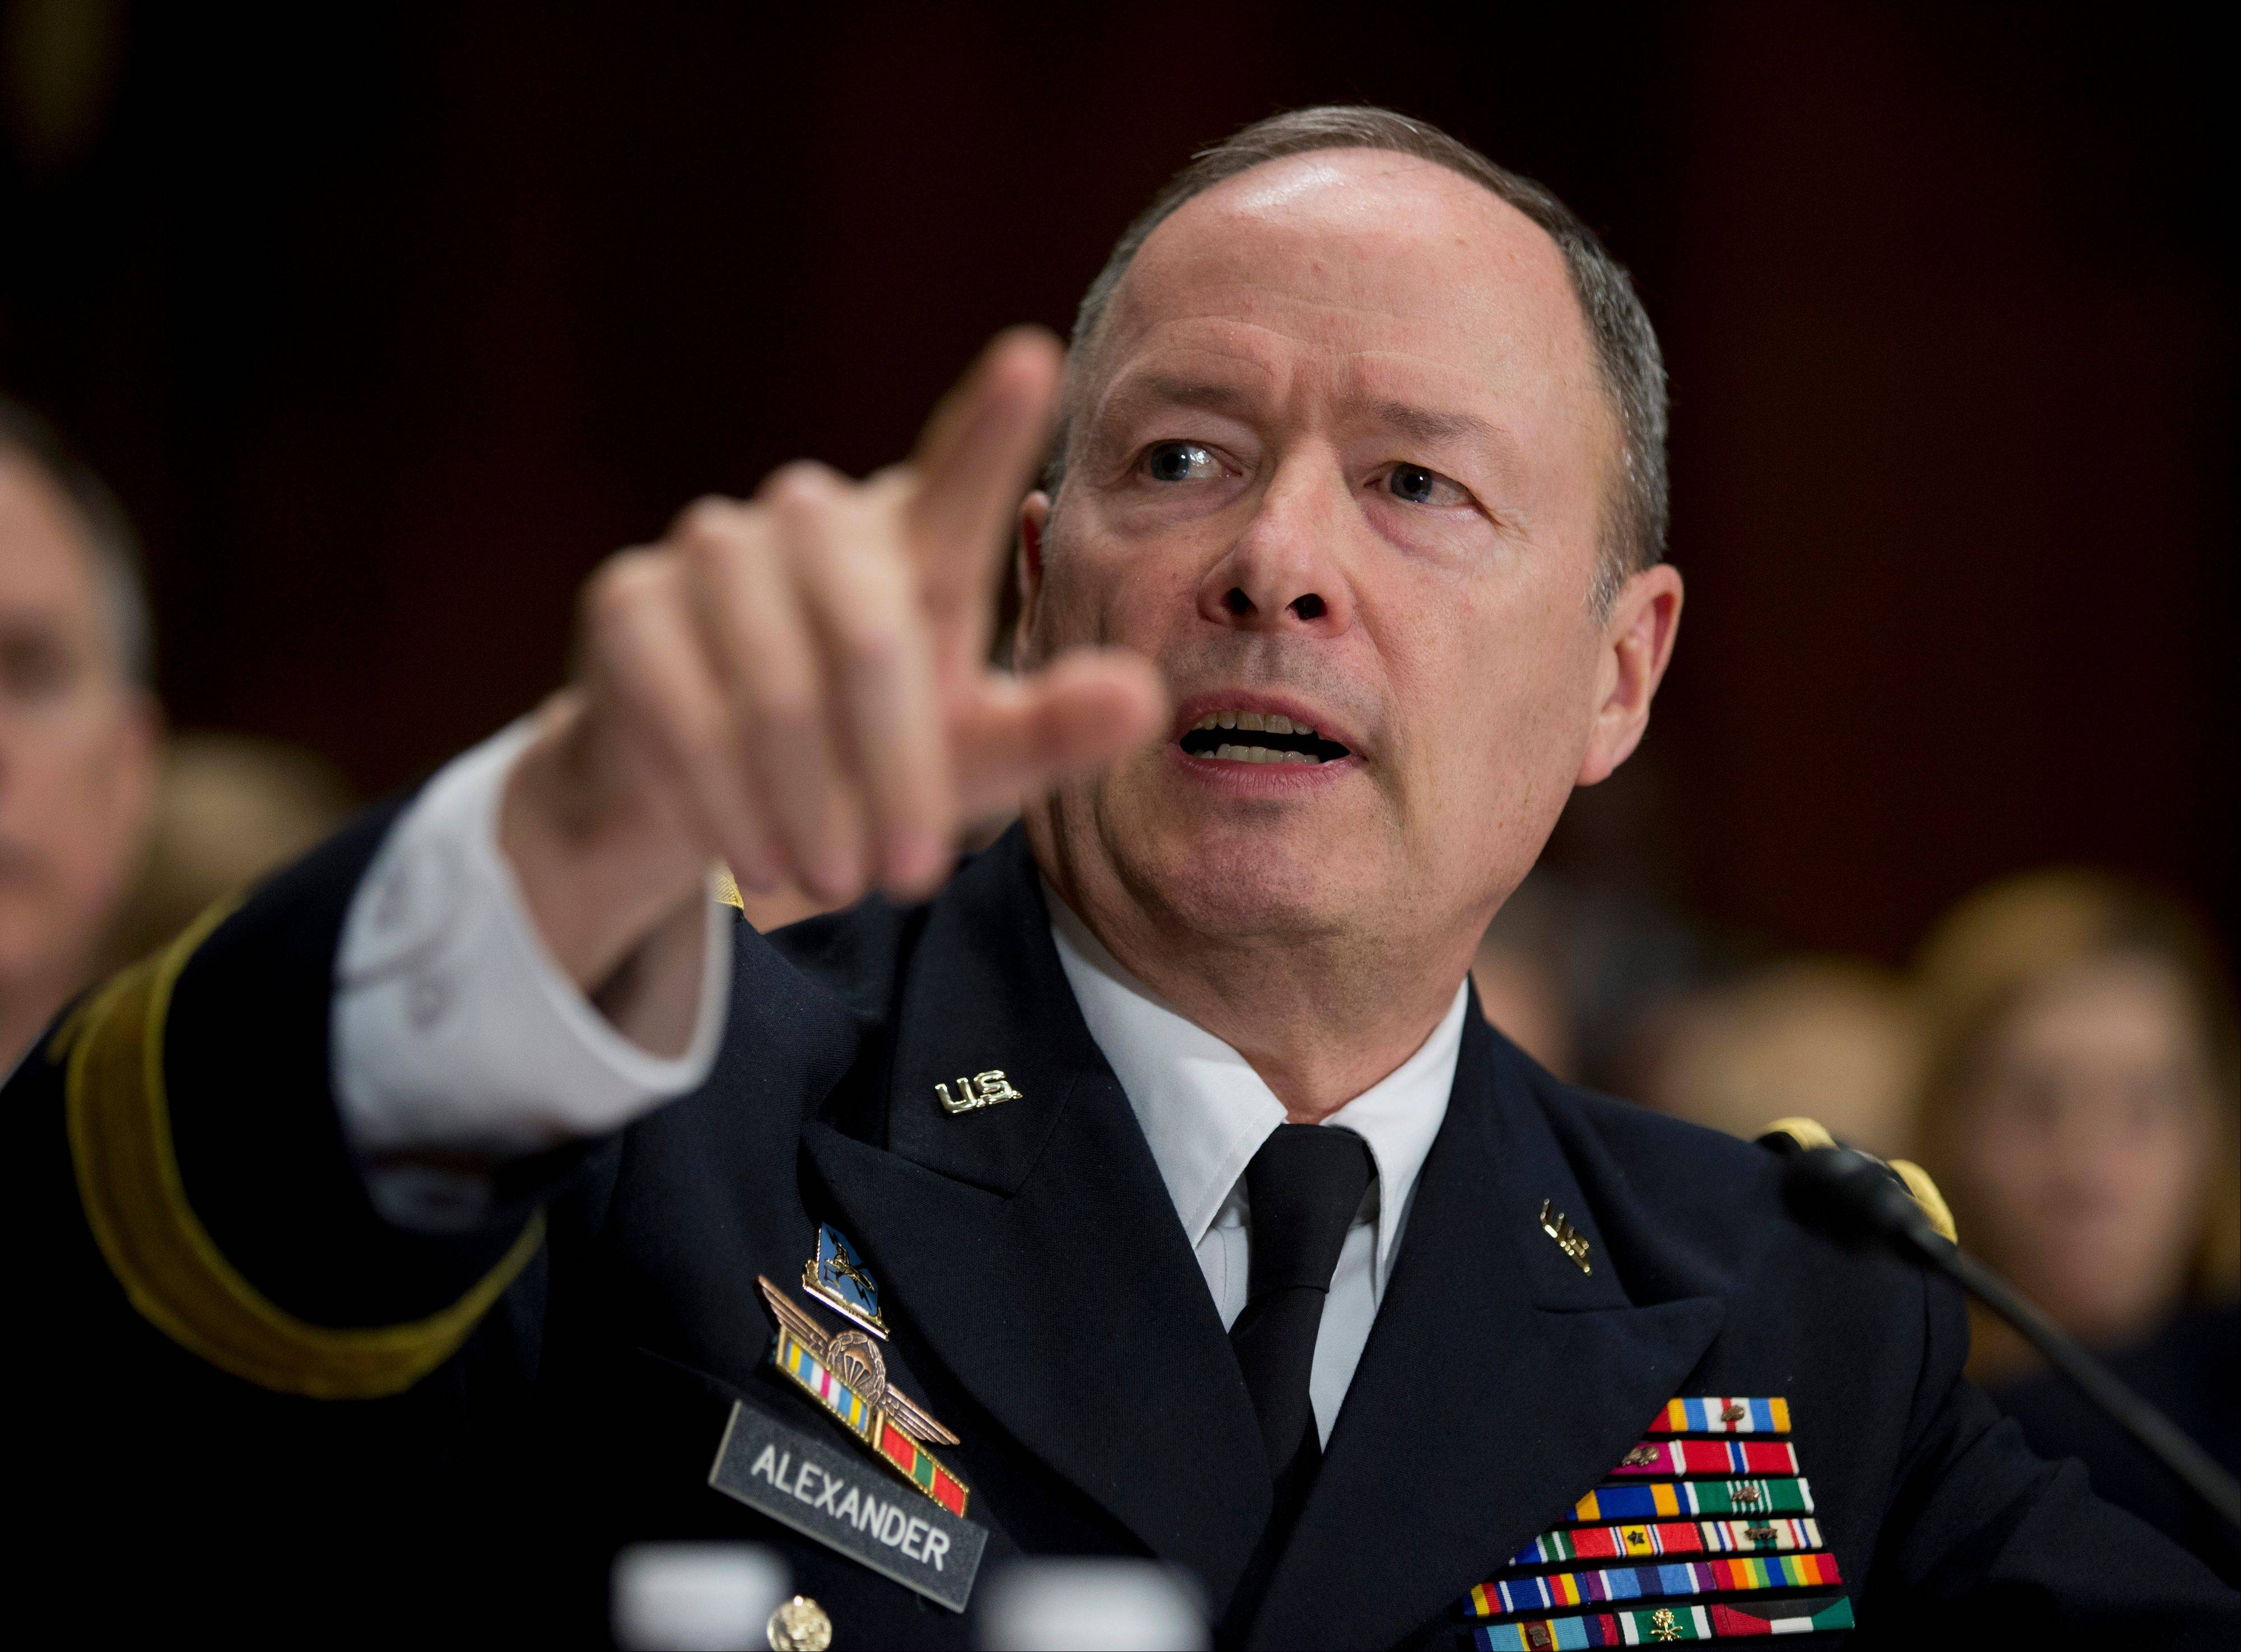 National Security Agency Director Gen. Keith Alexander testifies on Capitol Hill Wednesday in Washington before the Senate Judiciary Committee hearing on �Continued Oversight of U.S. Government Surveillance Authorities.�